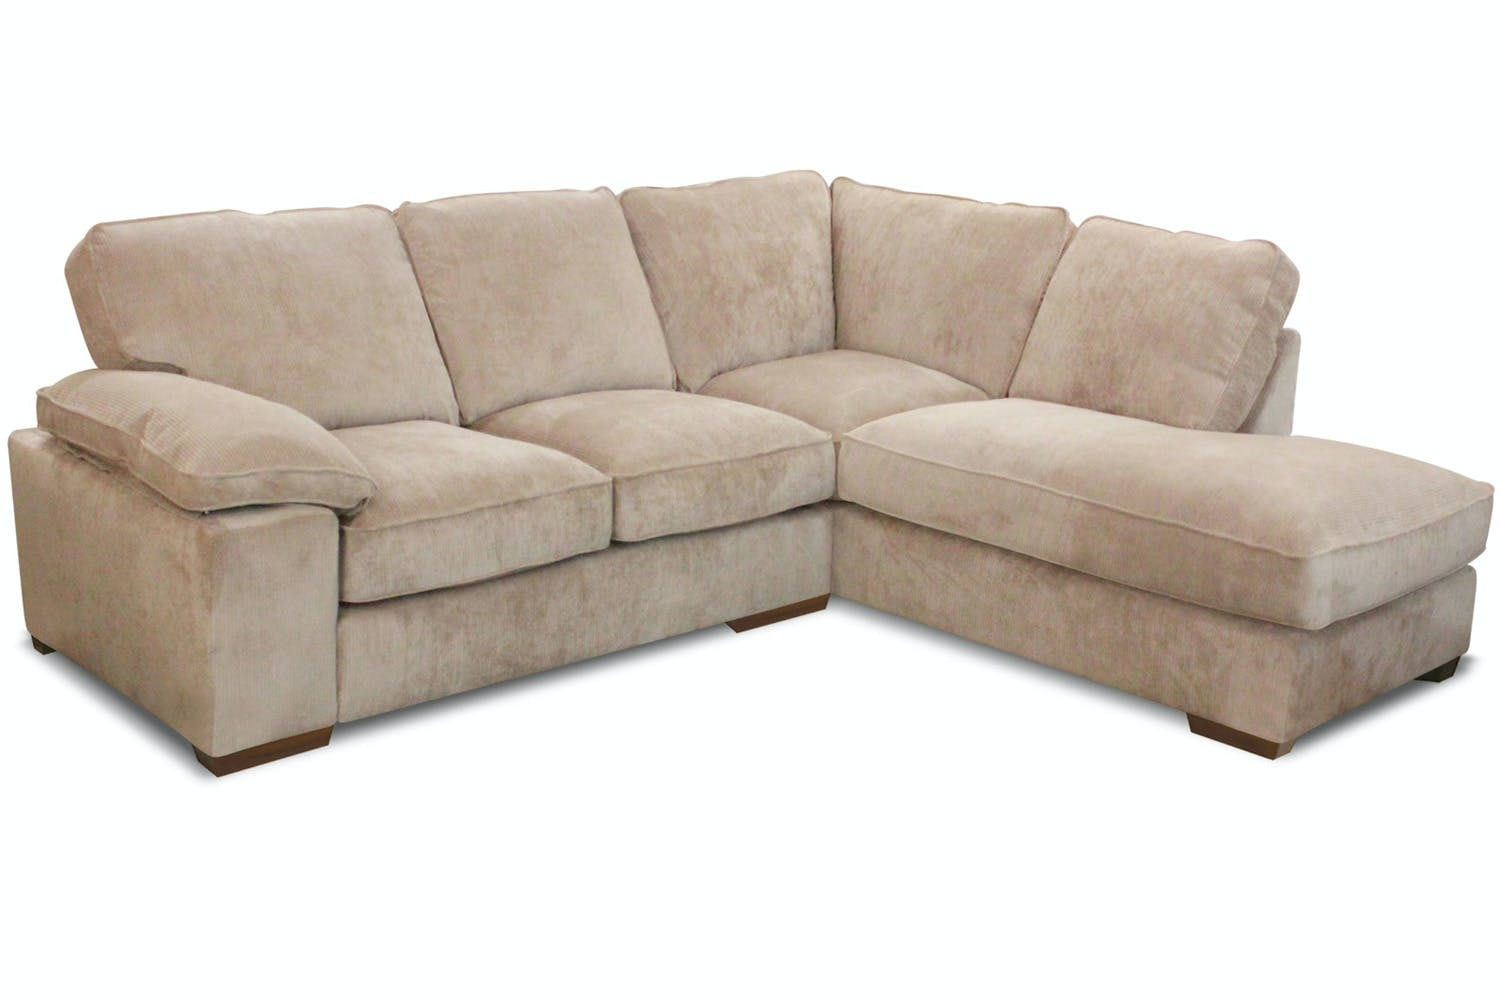 Utah corner sofa with sofa bed harvey norman harvey norman ireland Corner couch with sofa bed